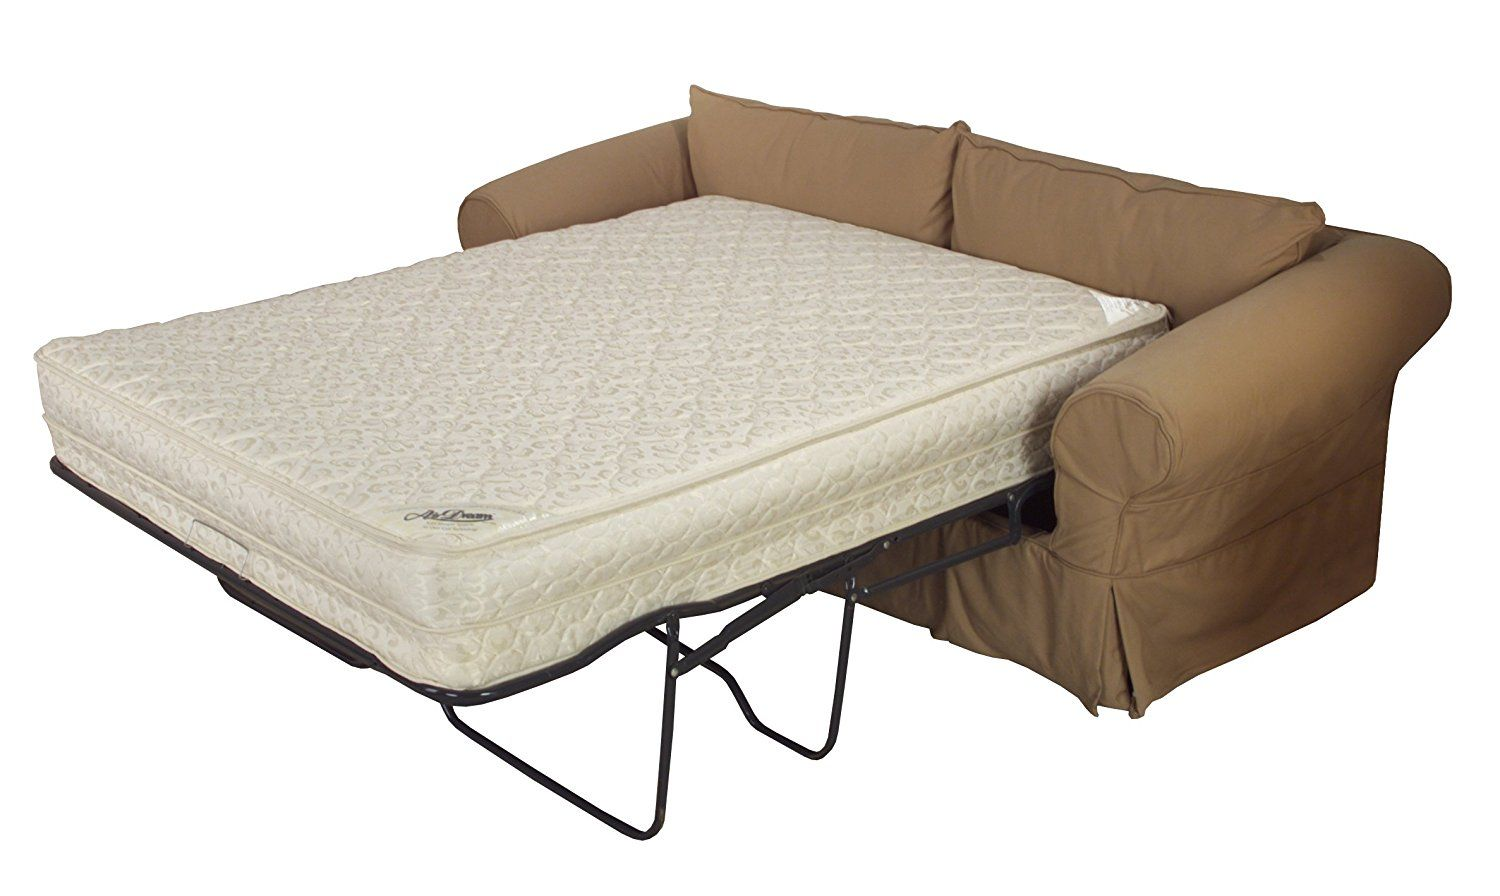 Awesome Replacement Mattress For Sofa Bed Great Replacement - Replacement sleeper sofa mattress